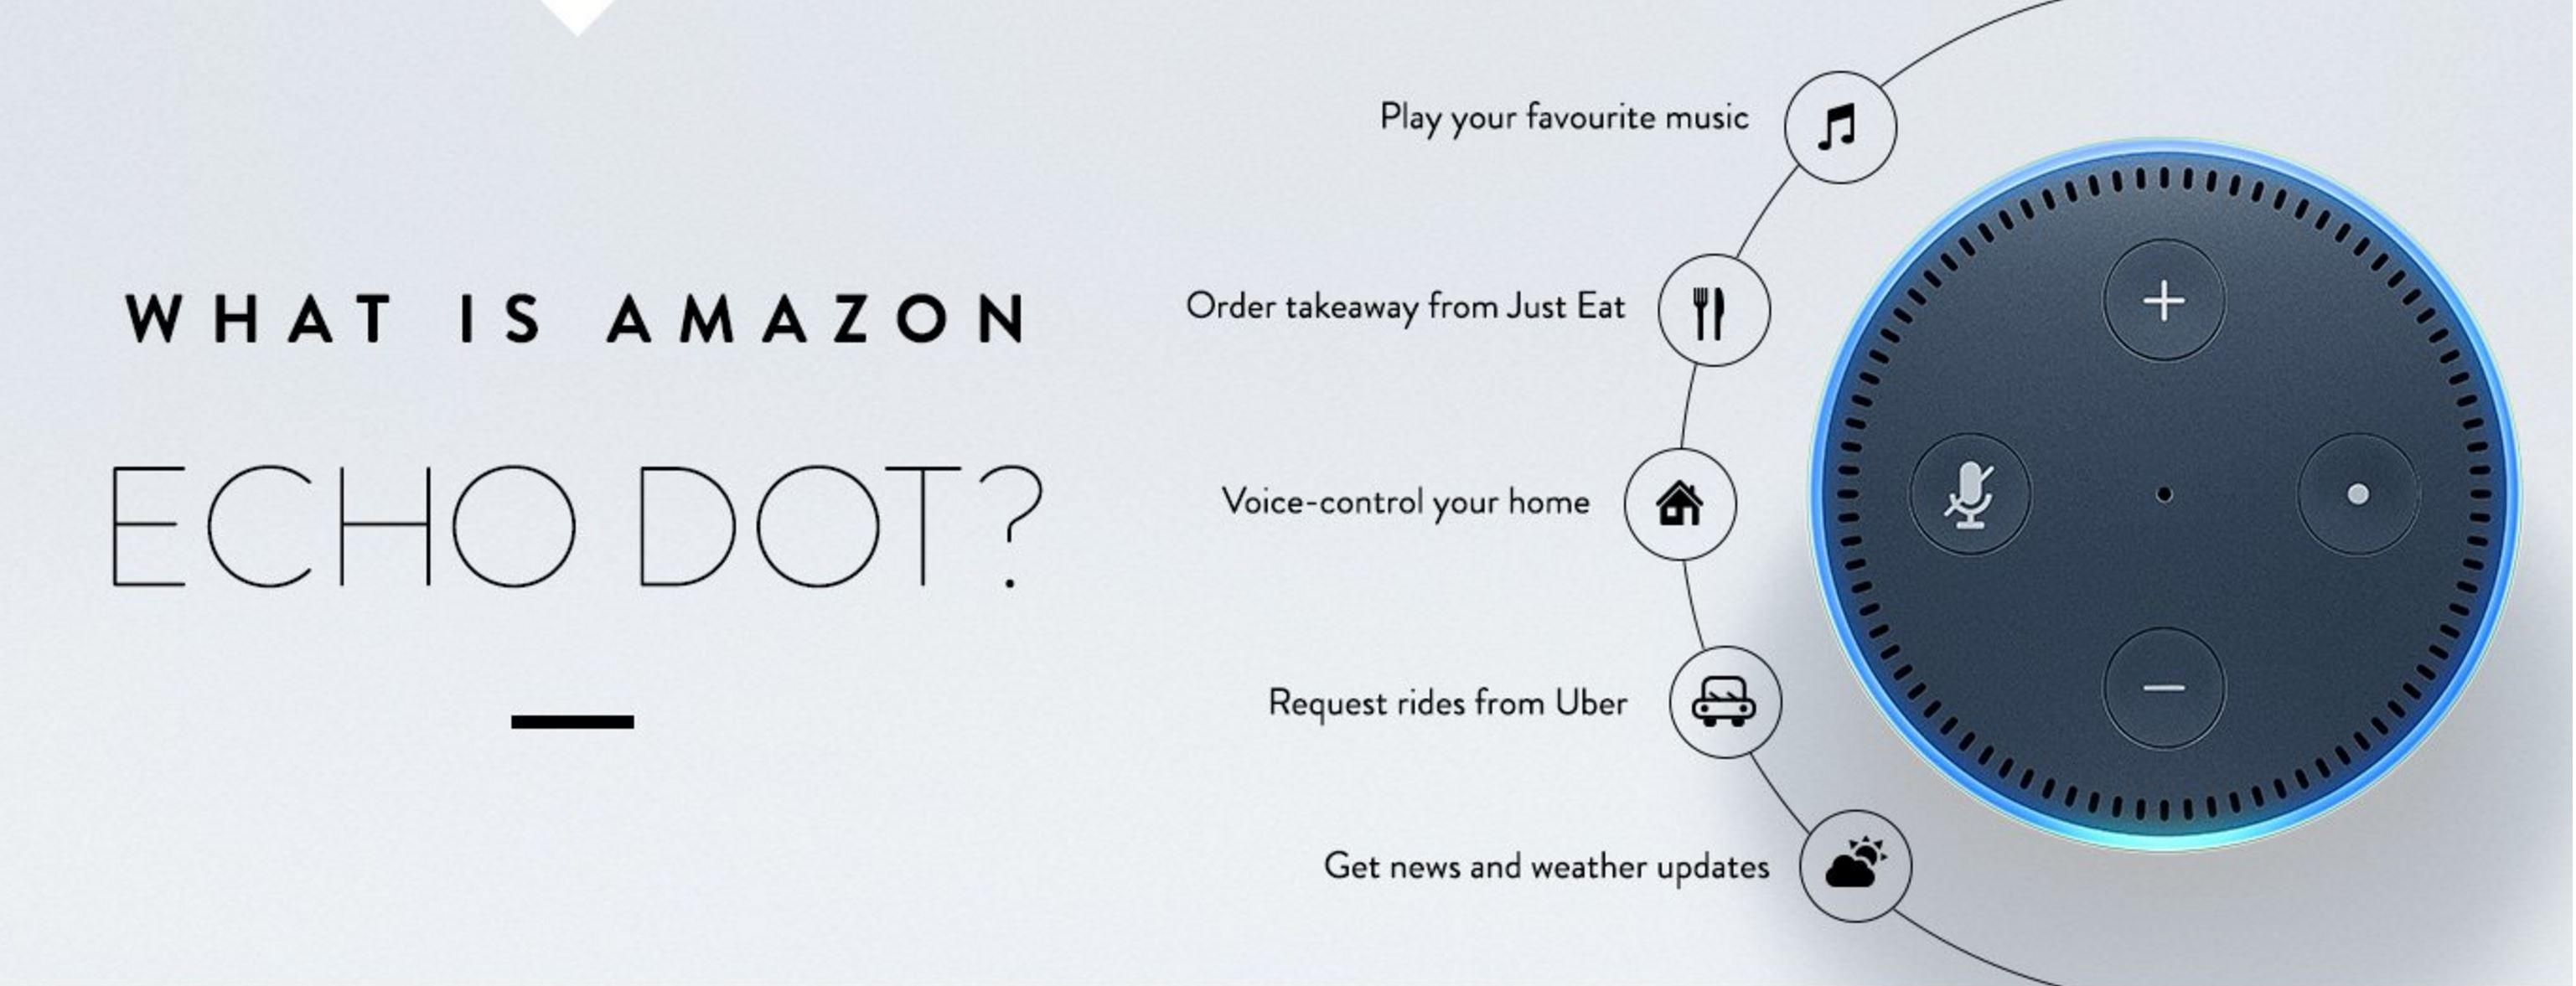 Amazon are back with Echo Dot 2nd Generation!